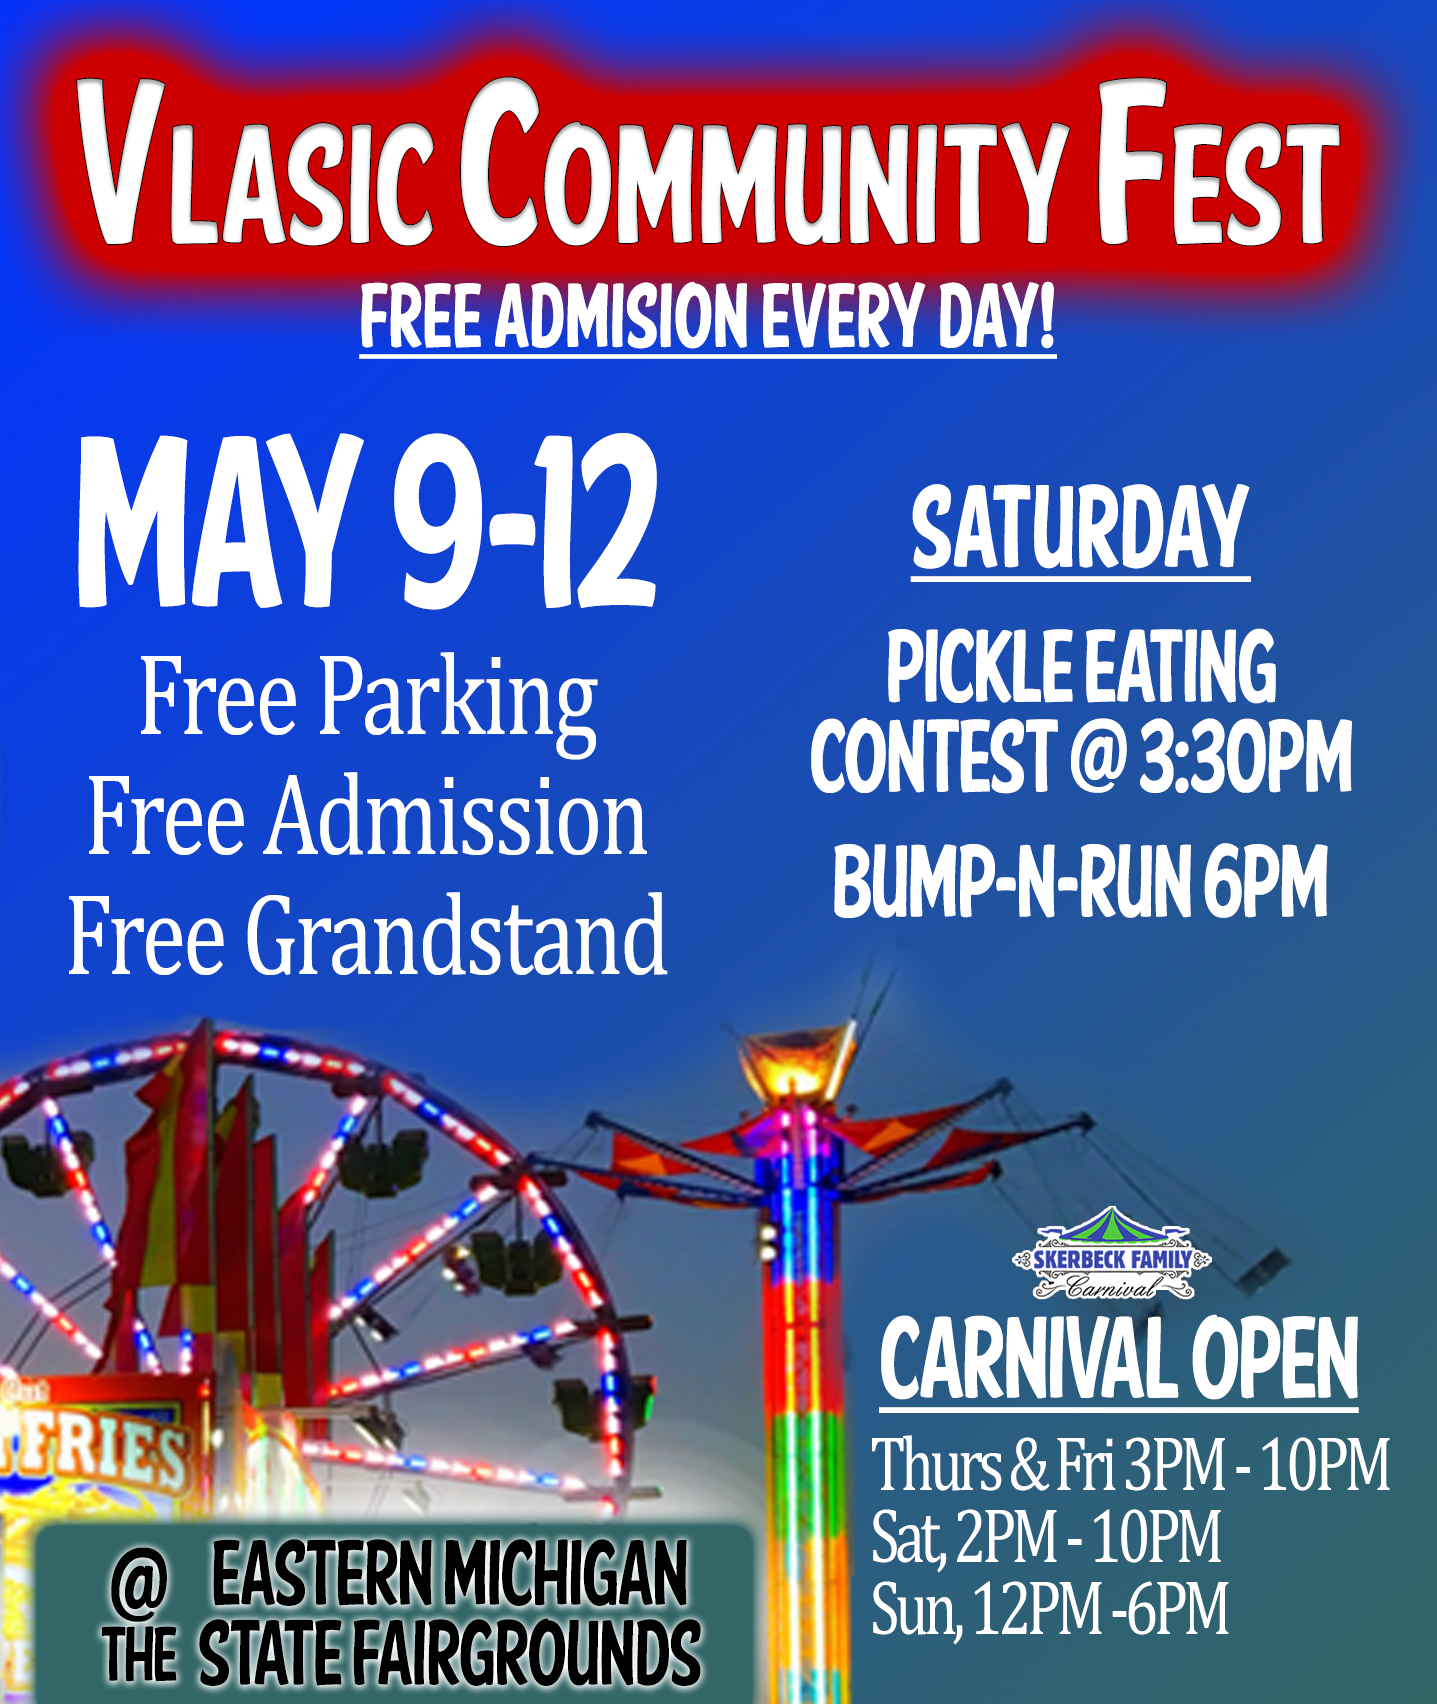 2019 Vlasic Community Fest | May 9th - 12th